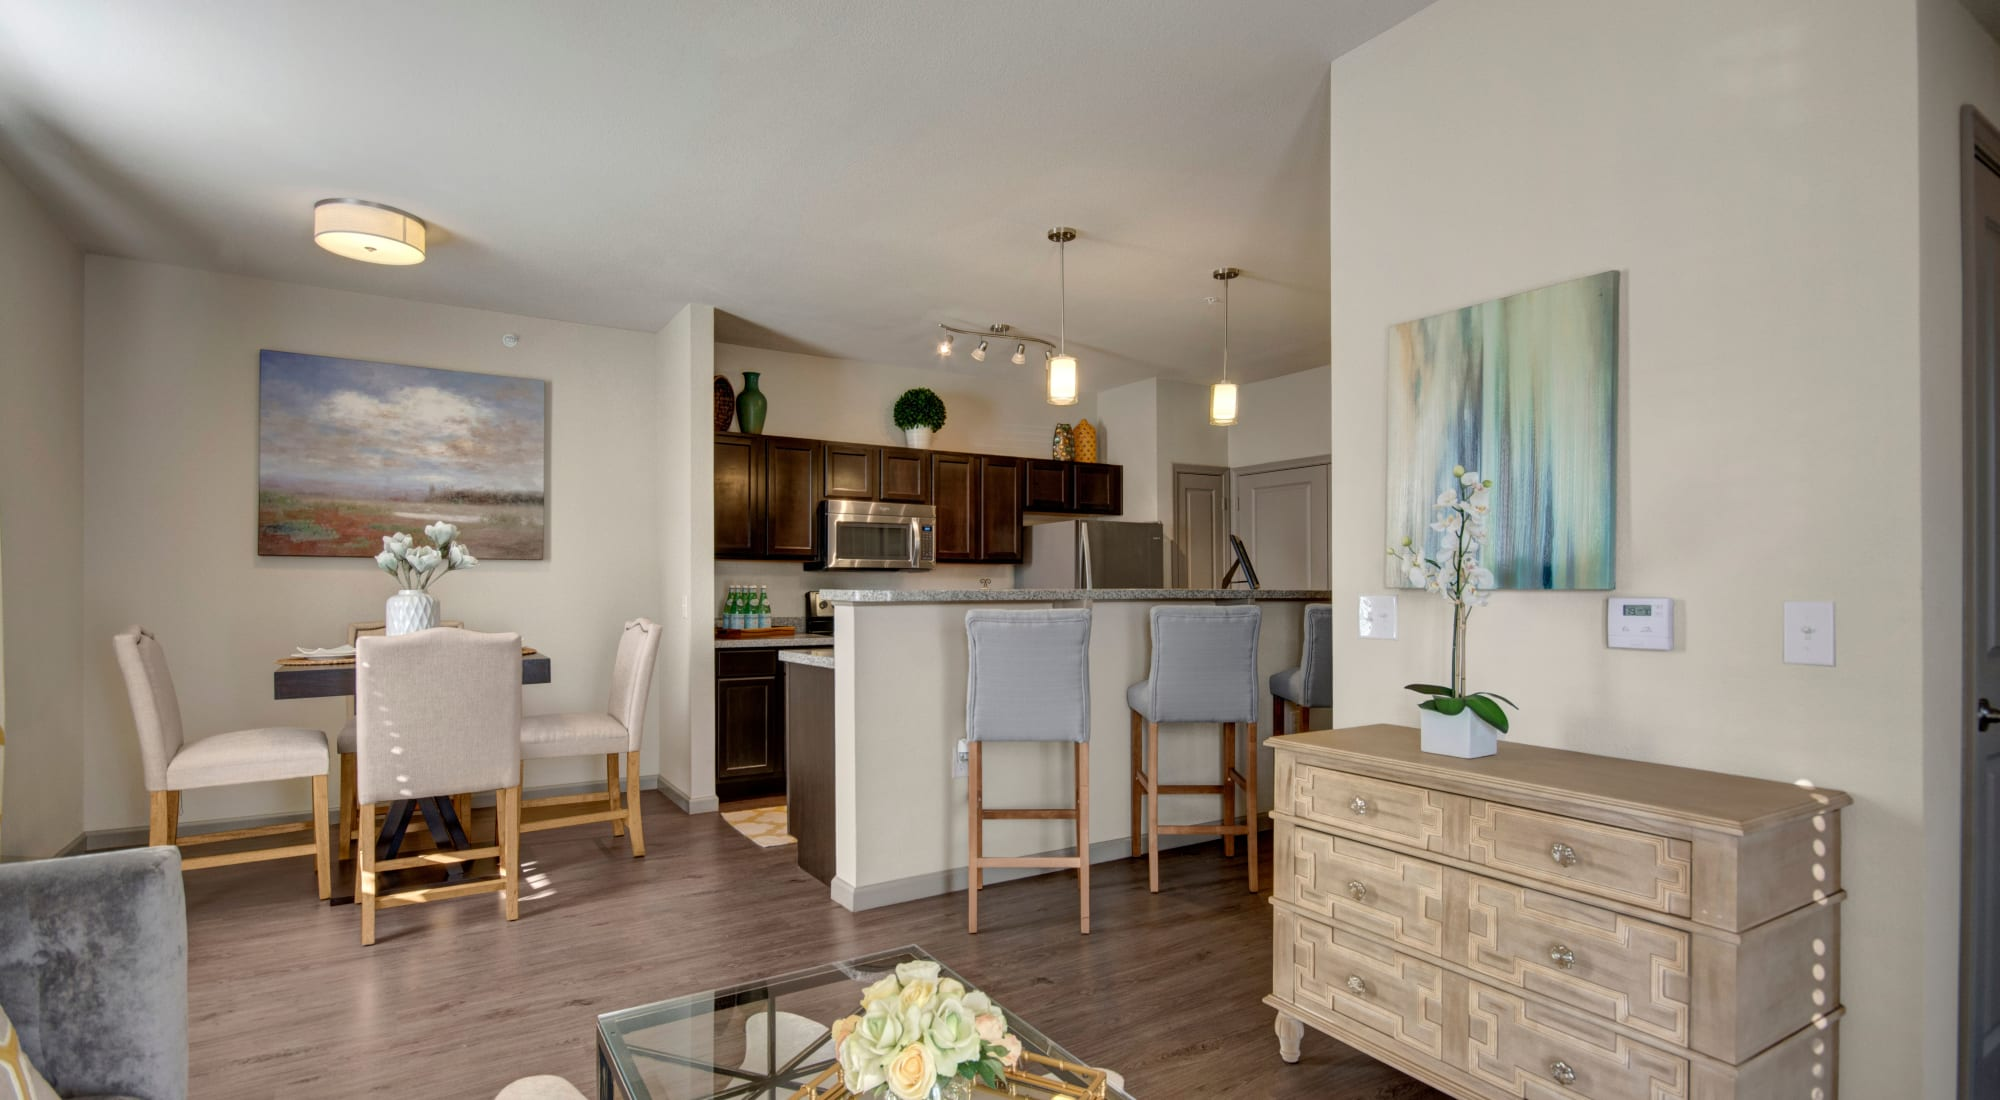 Floor plans at Creekside South in Wylie, Texas